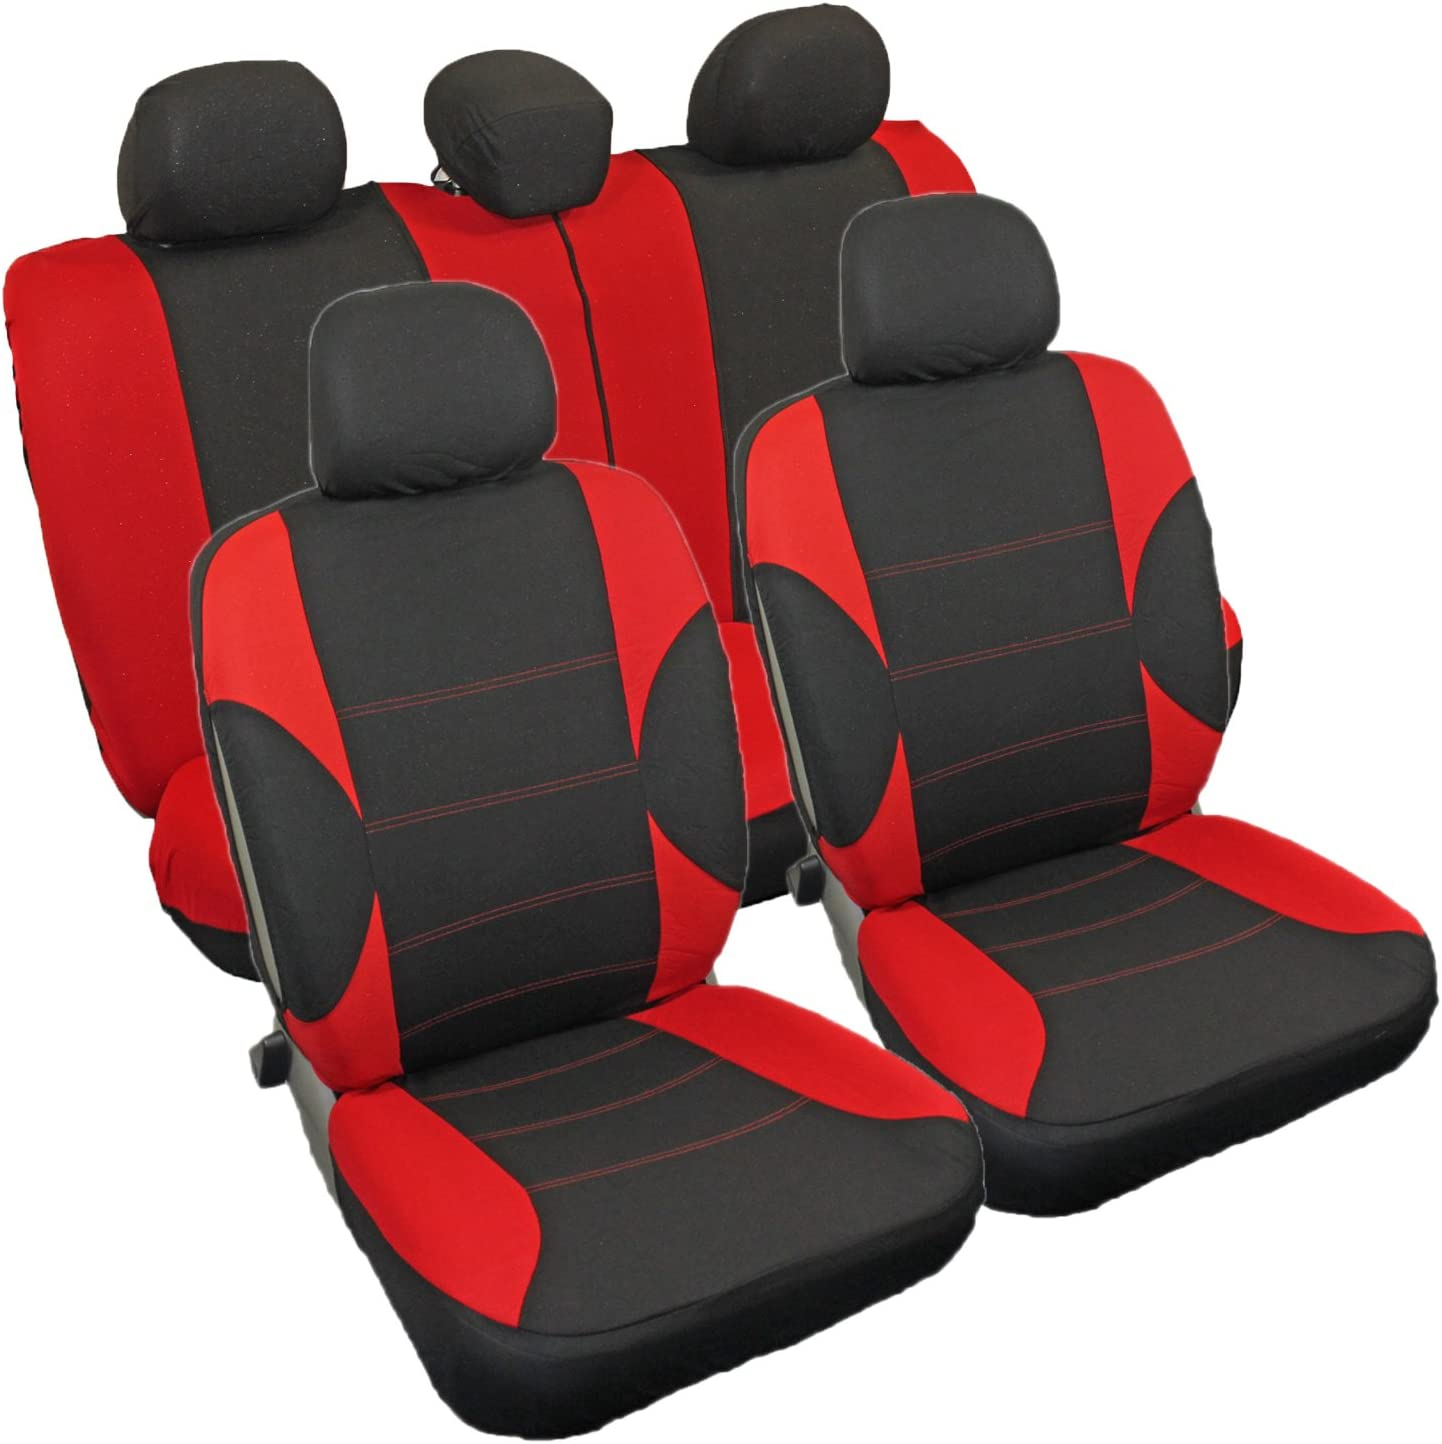 Streetwize SWSC55 Red Polyester Seat Cover Set with Zips 11 Pieces